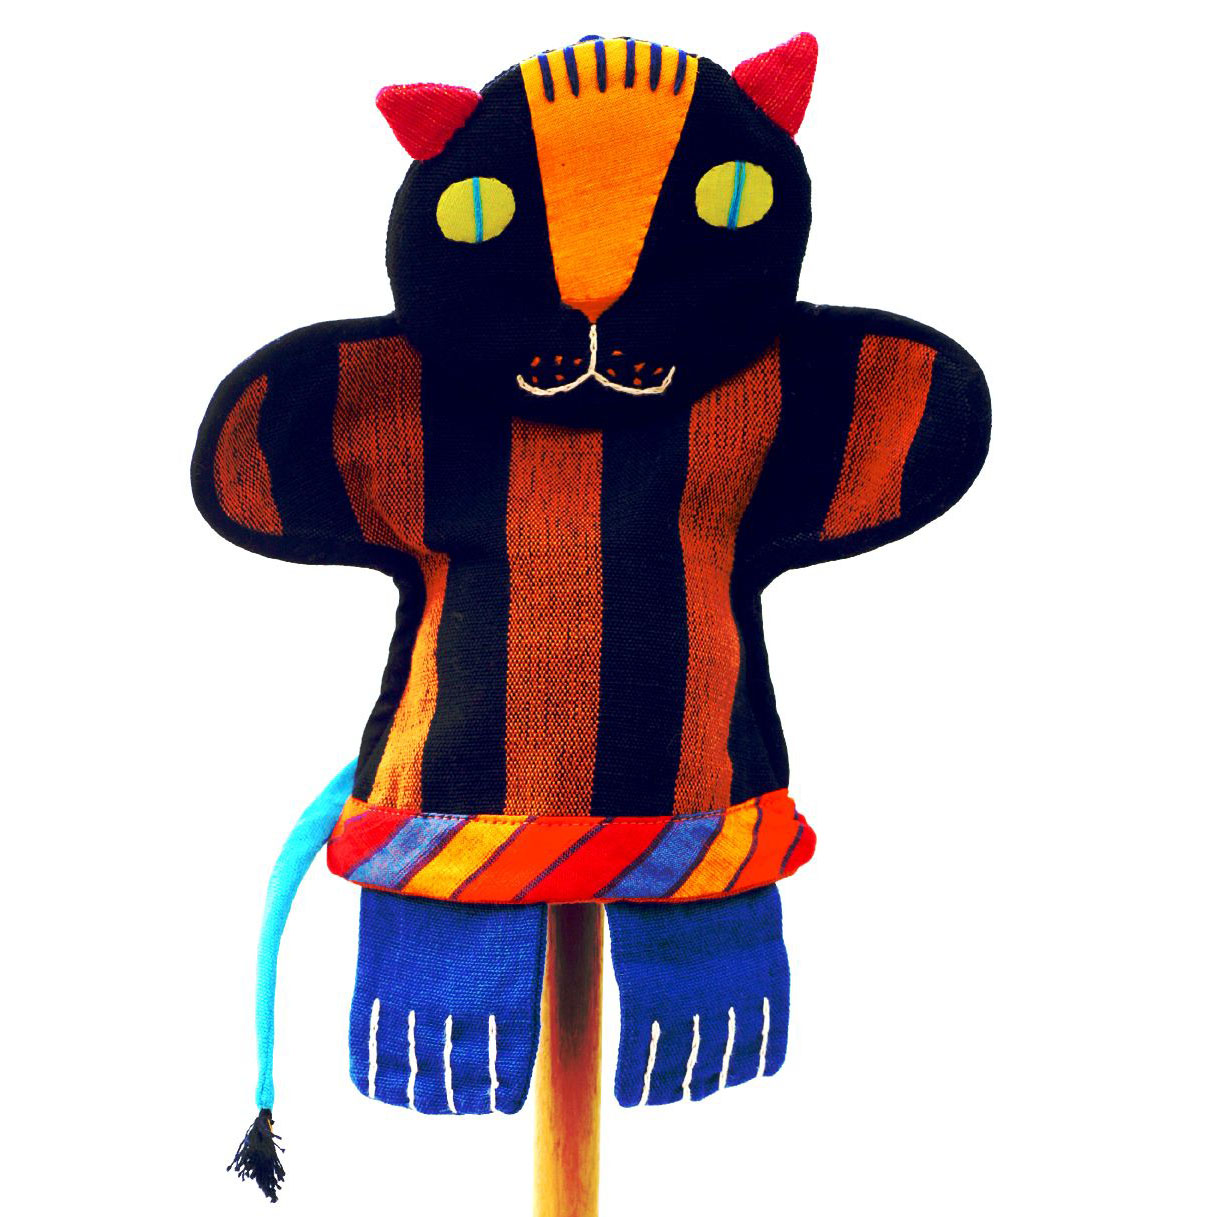 Tiger hand puppet by Barefoot